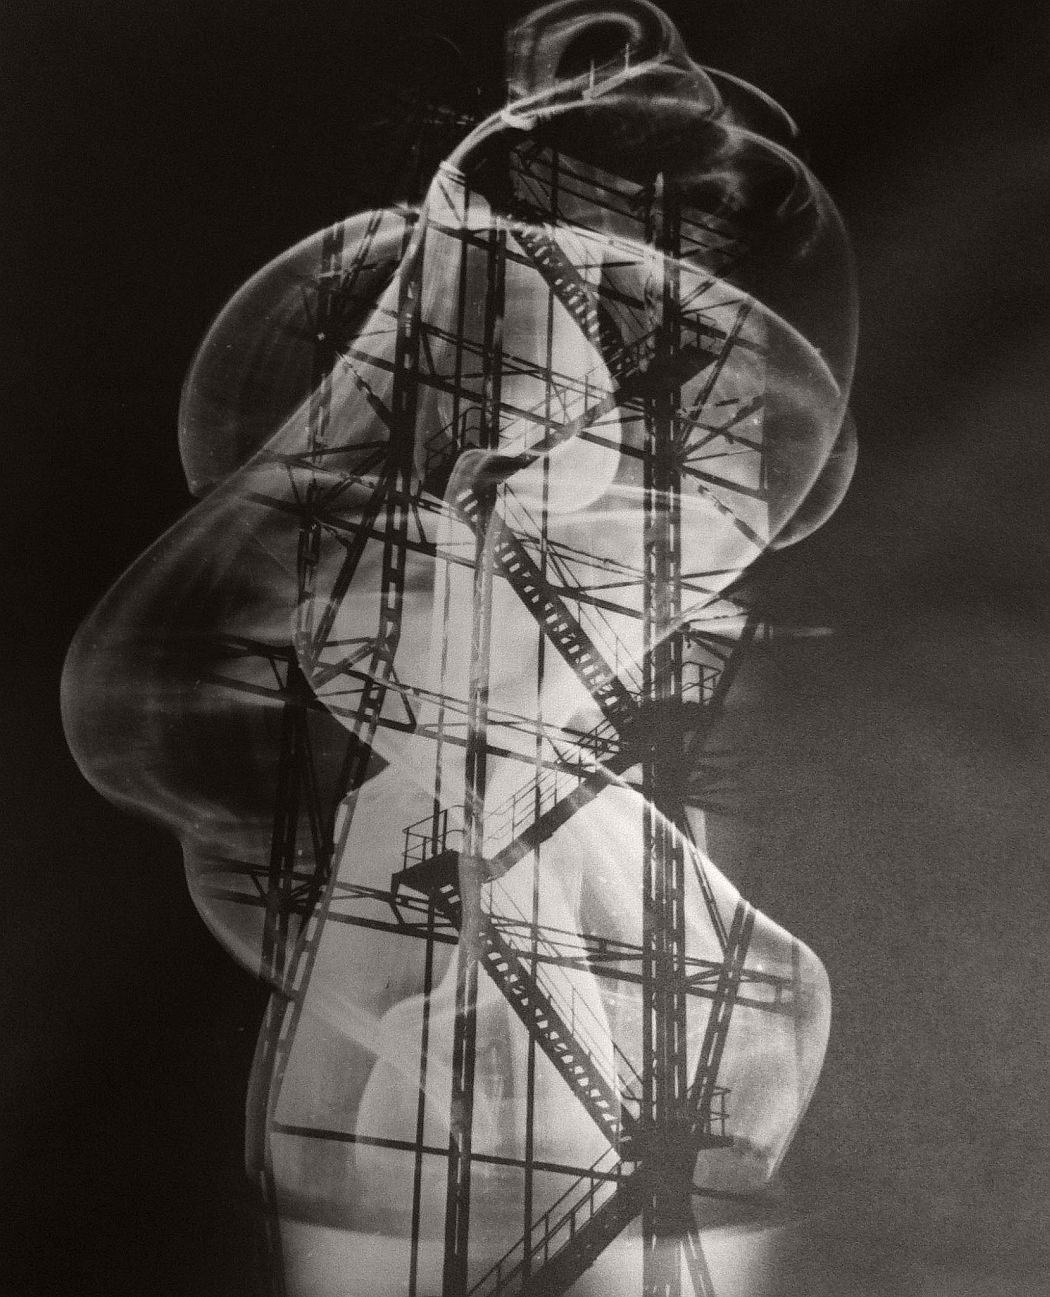 heinz-hajek-halke-german-experimental-photographer-02